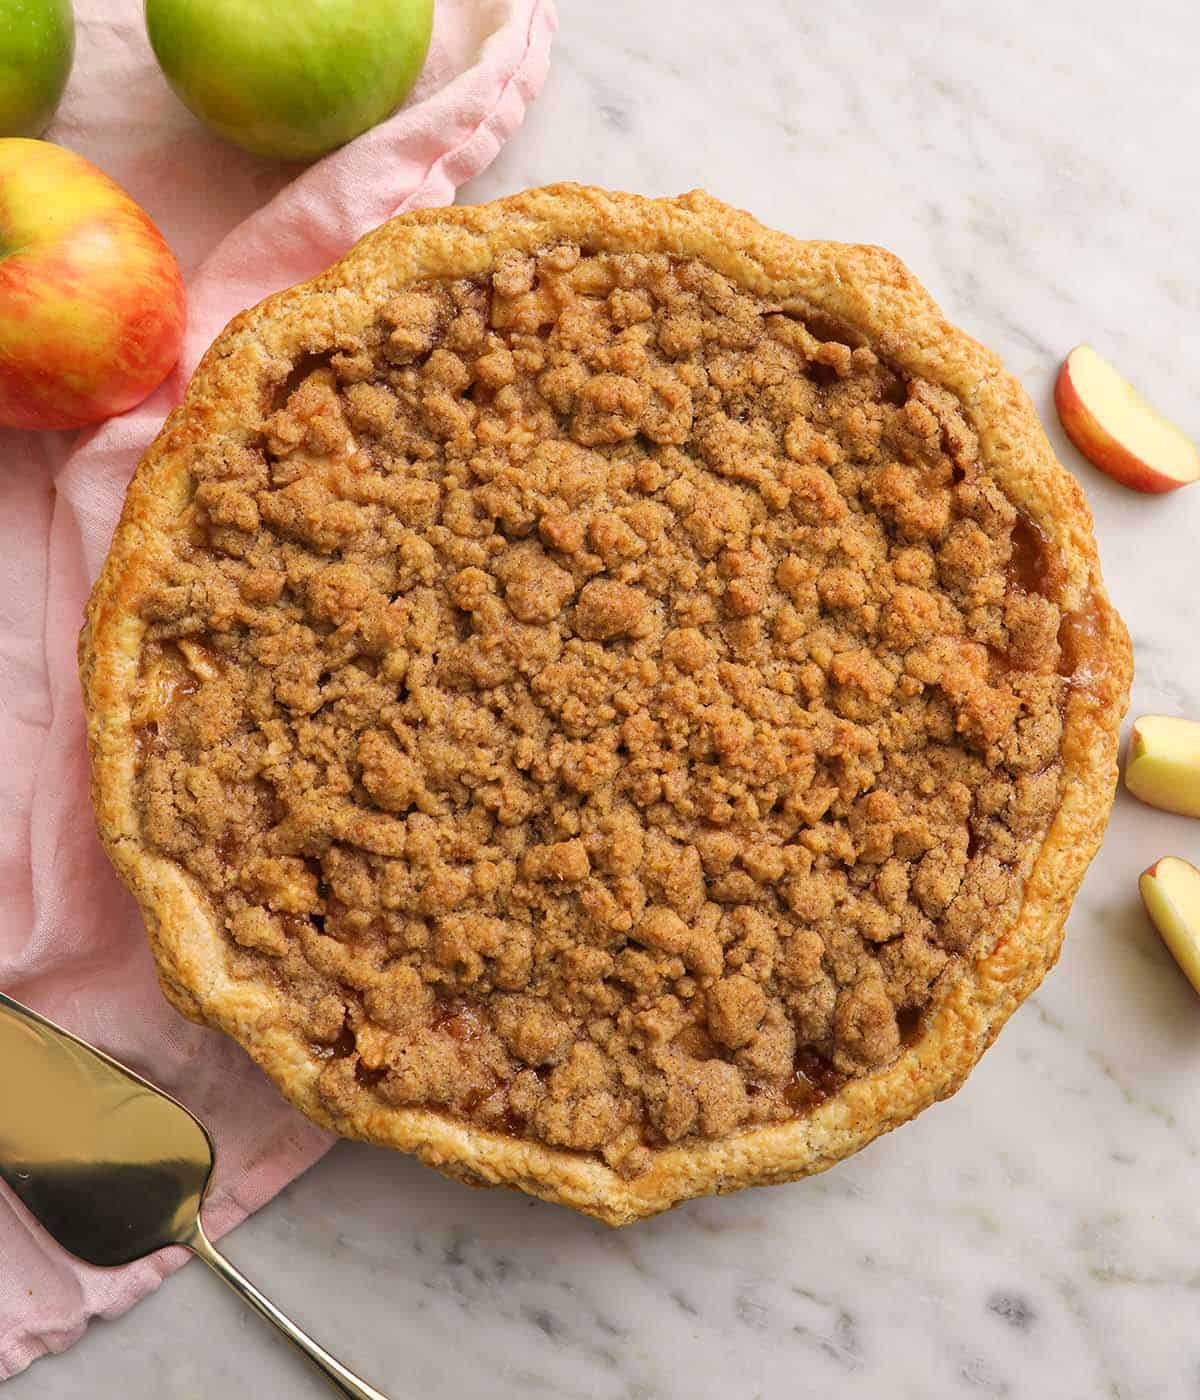 A freshly baked apple crumble pie ready to be served.